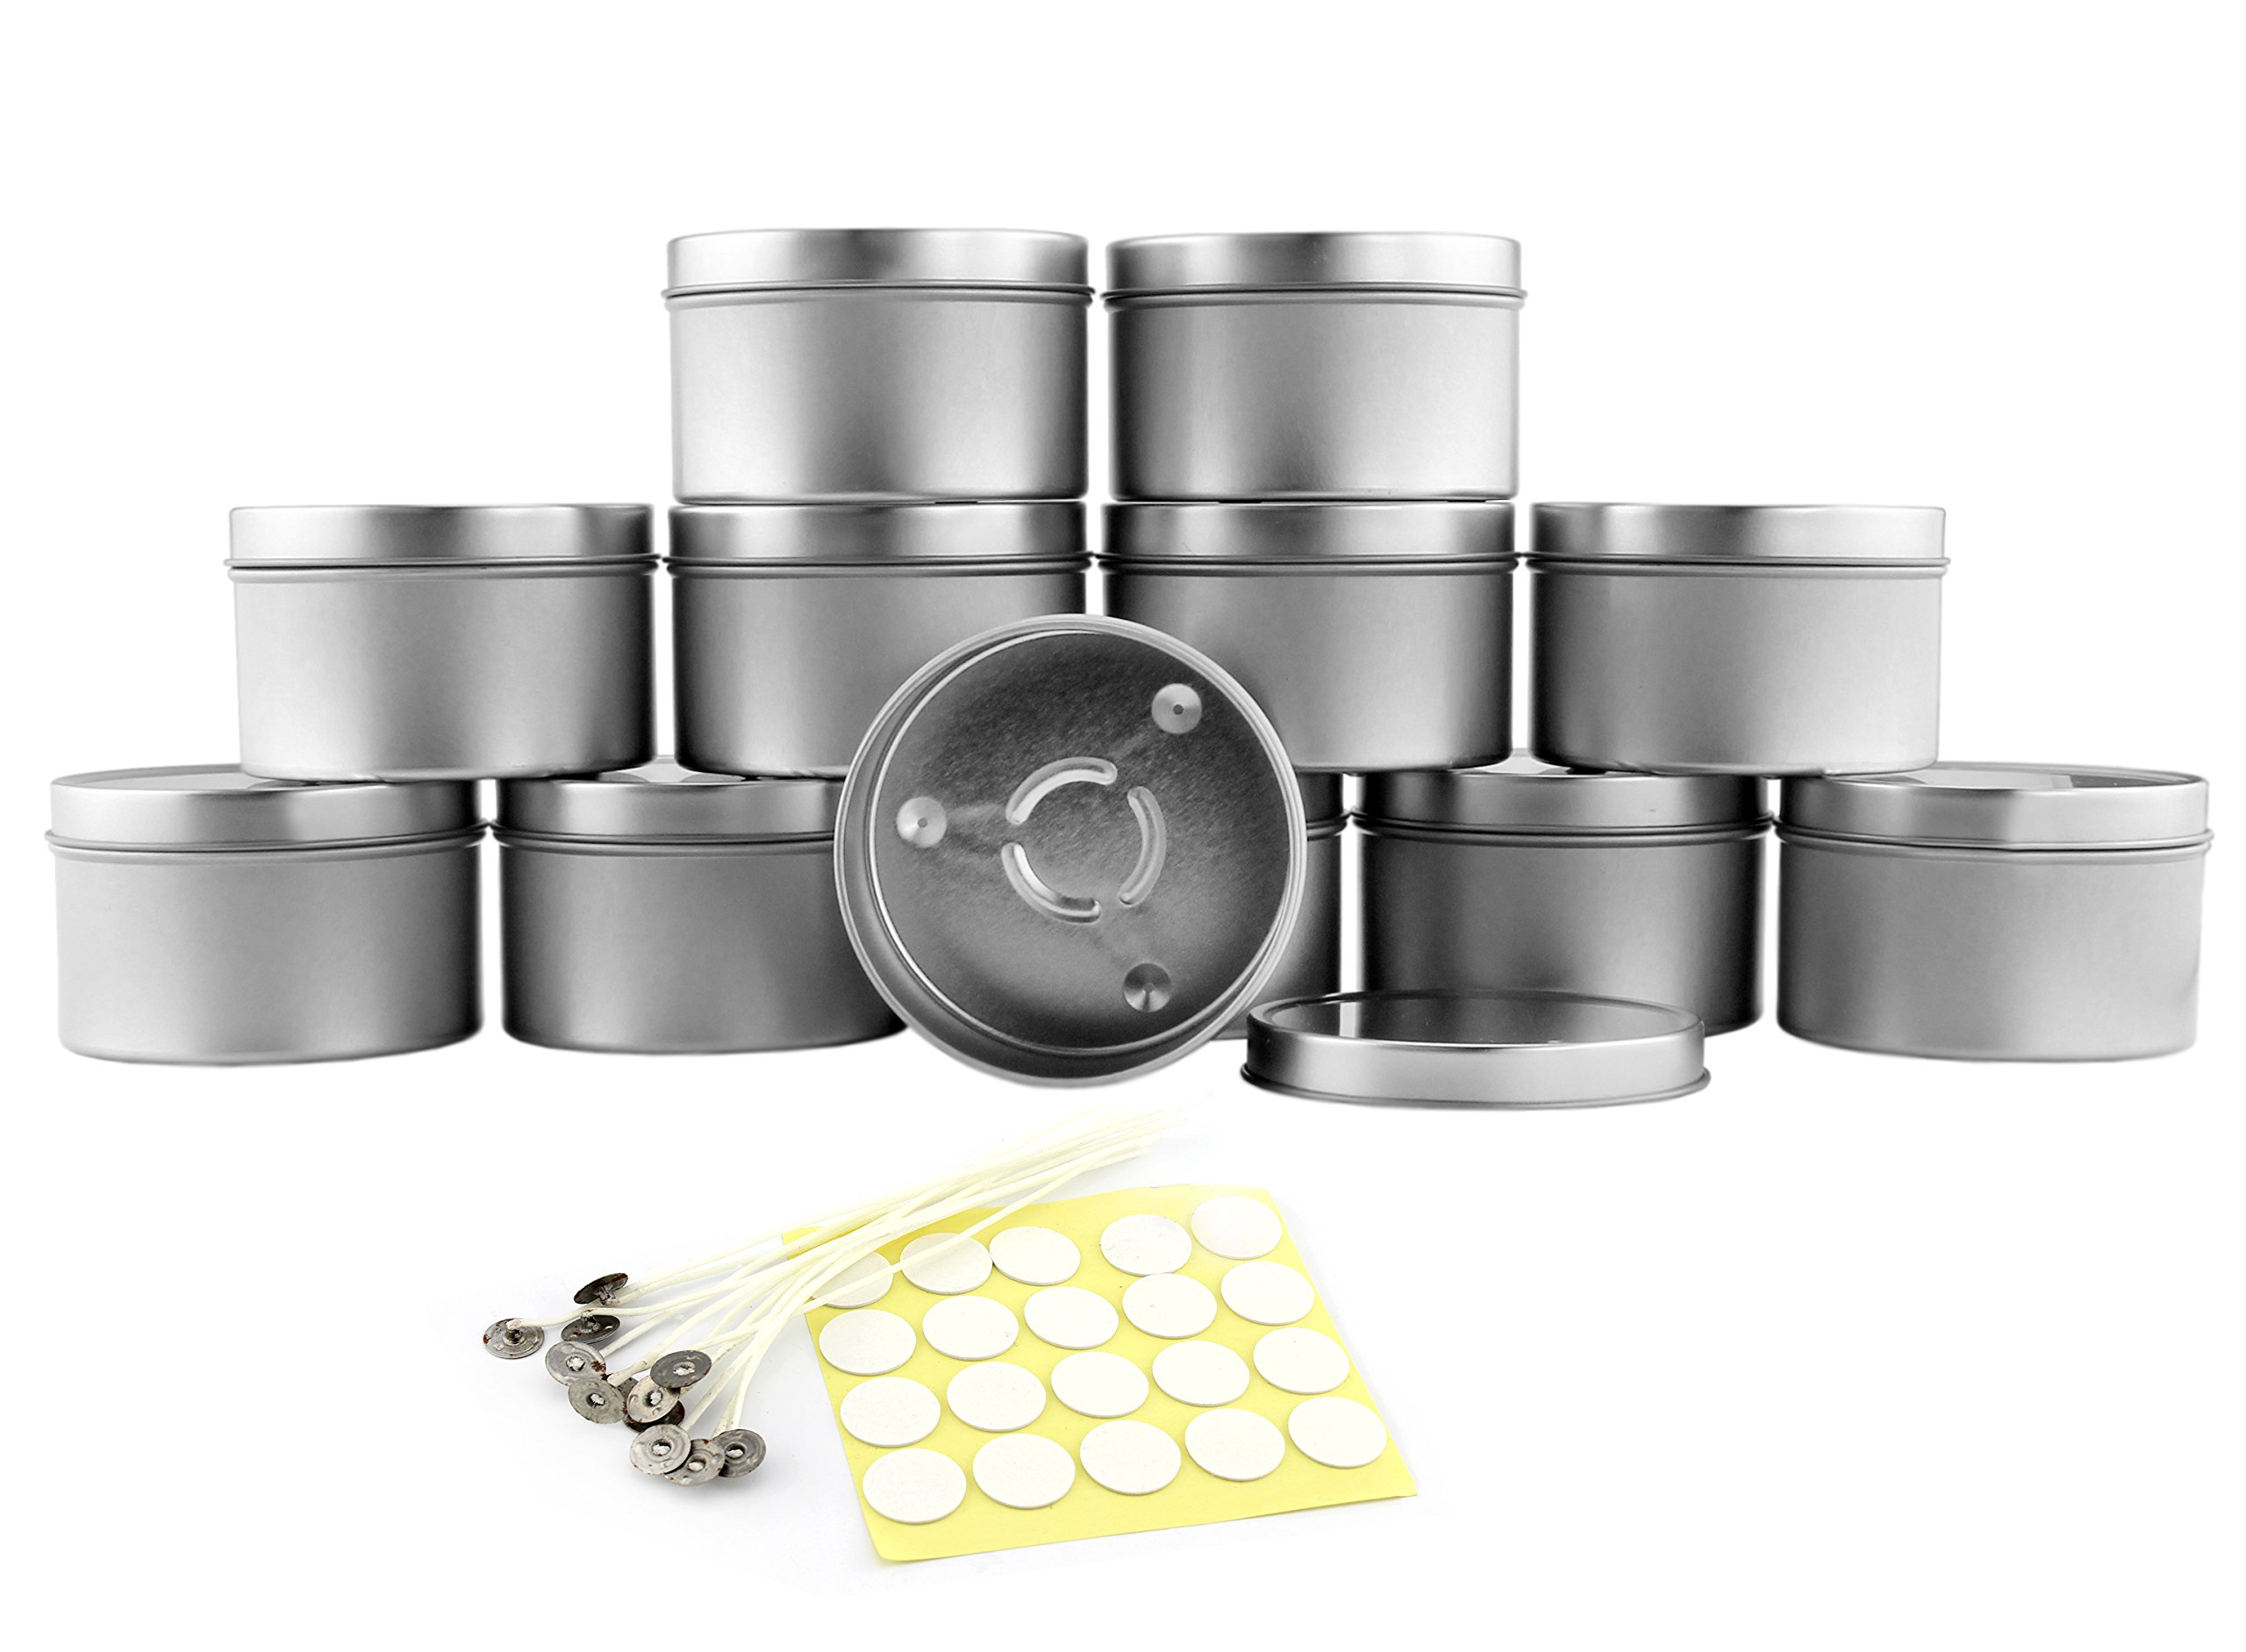 8-Ounce Candle Tins, Wicks & Wick Stickers (12-Pack); Round Metal Containers w/ Wick Guide & Feet for Candle Making, Includes Wick Stickers & Wicks Too